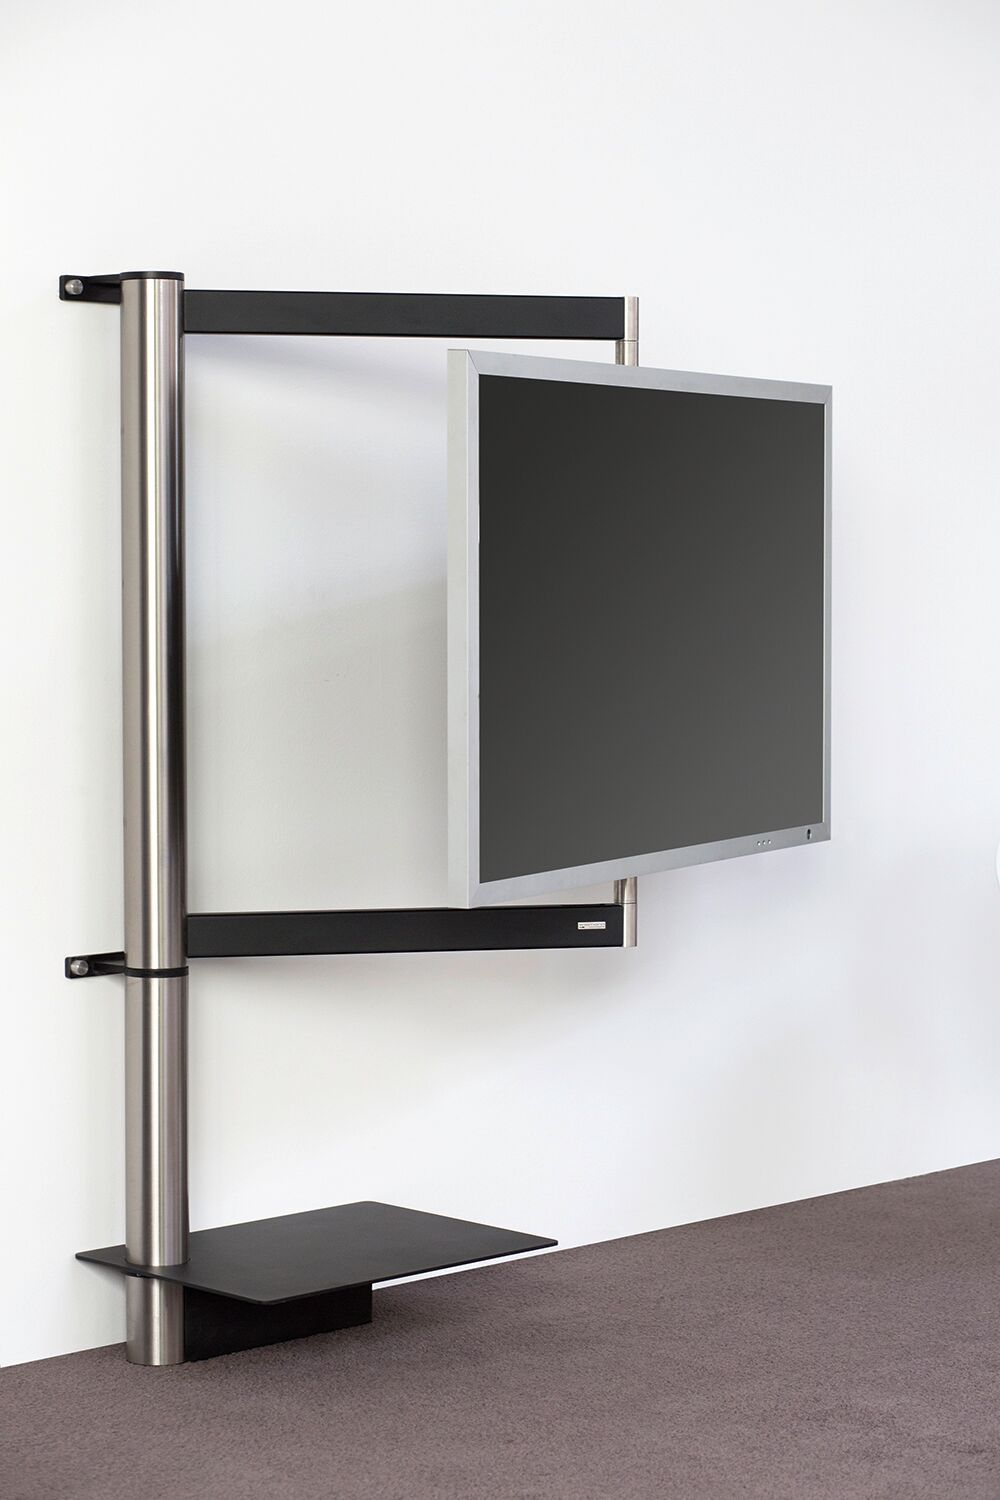 Tv Mount Stand Swivel Function For Perfect View From Any Place